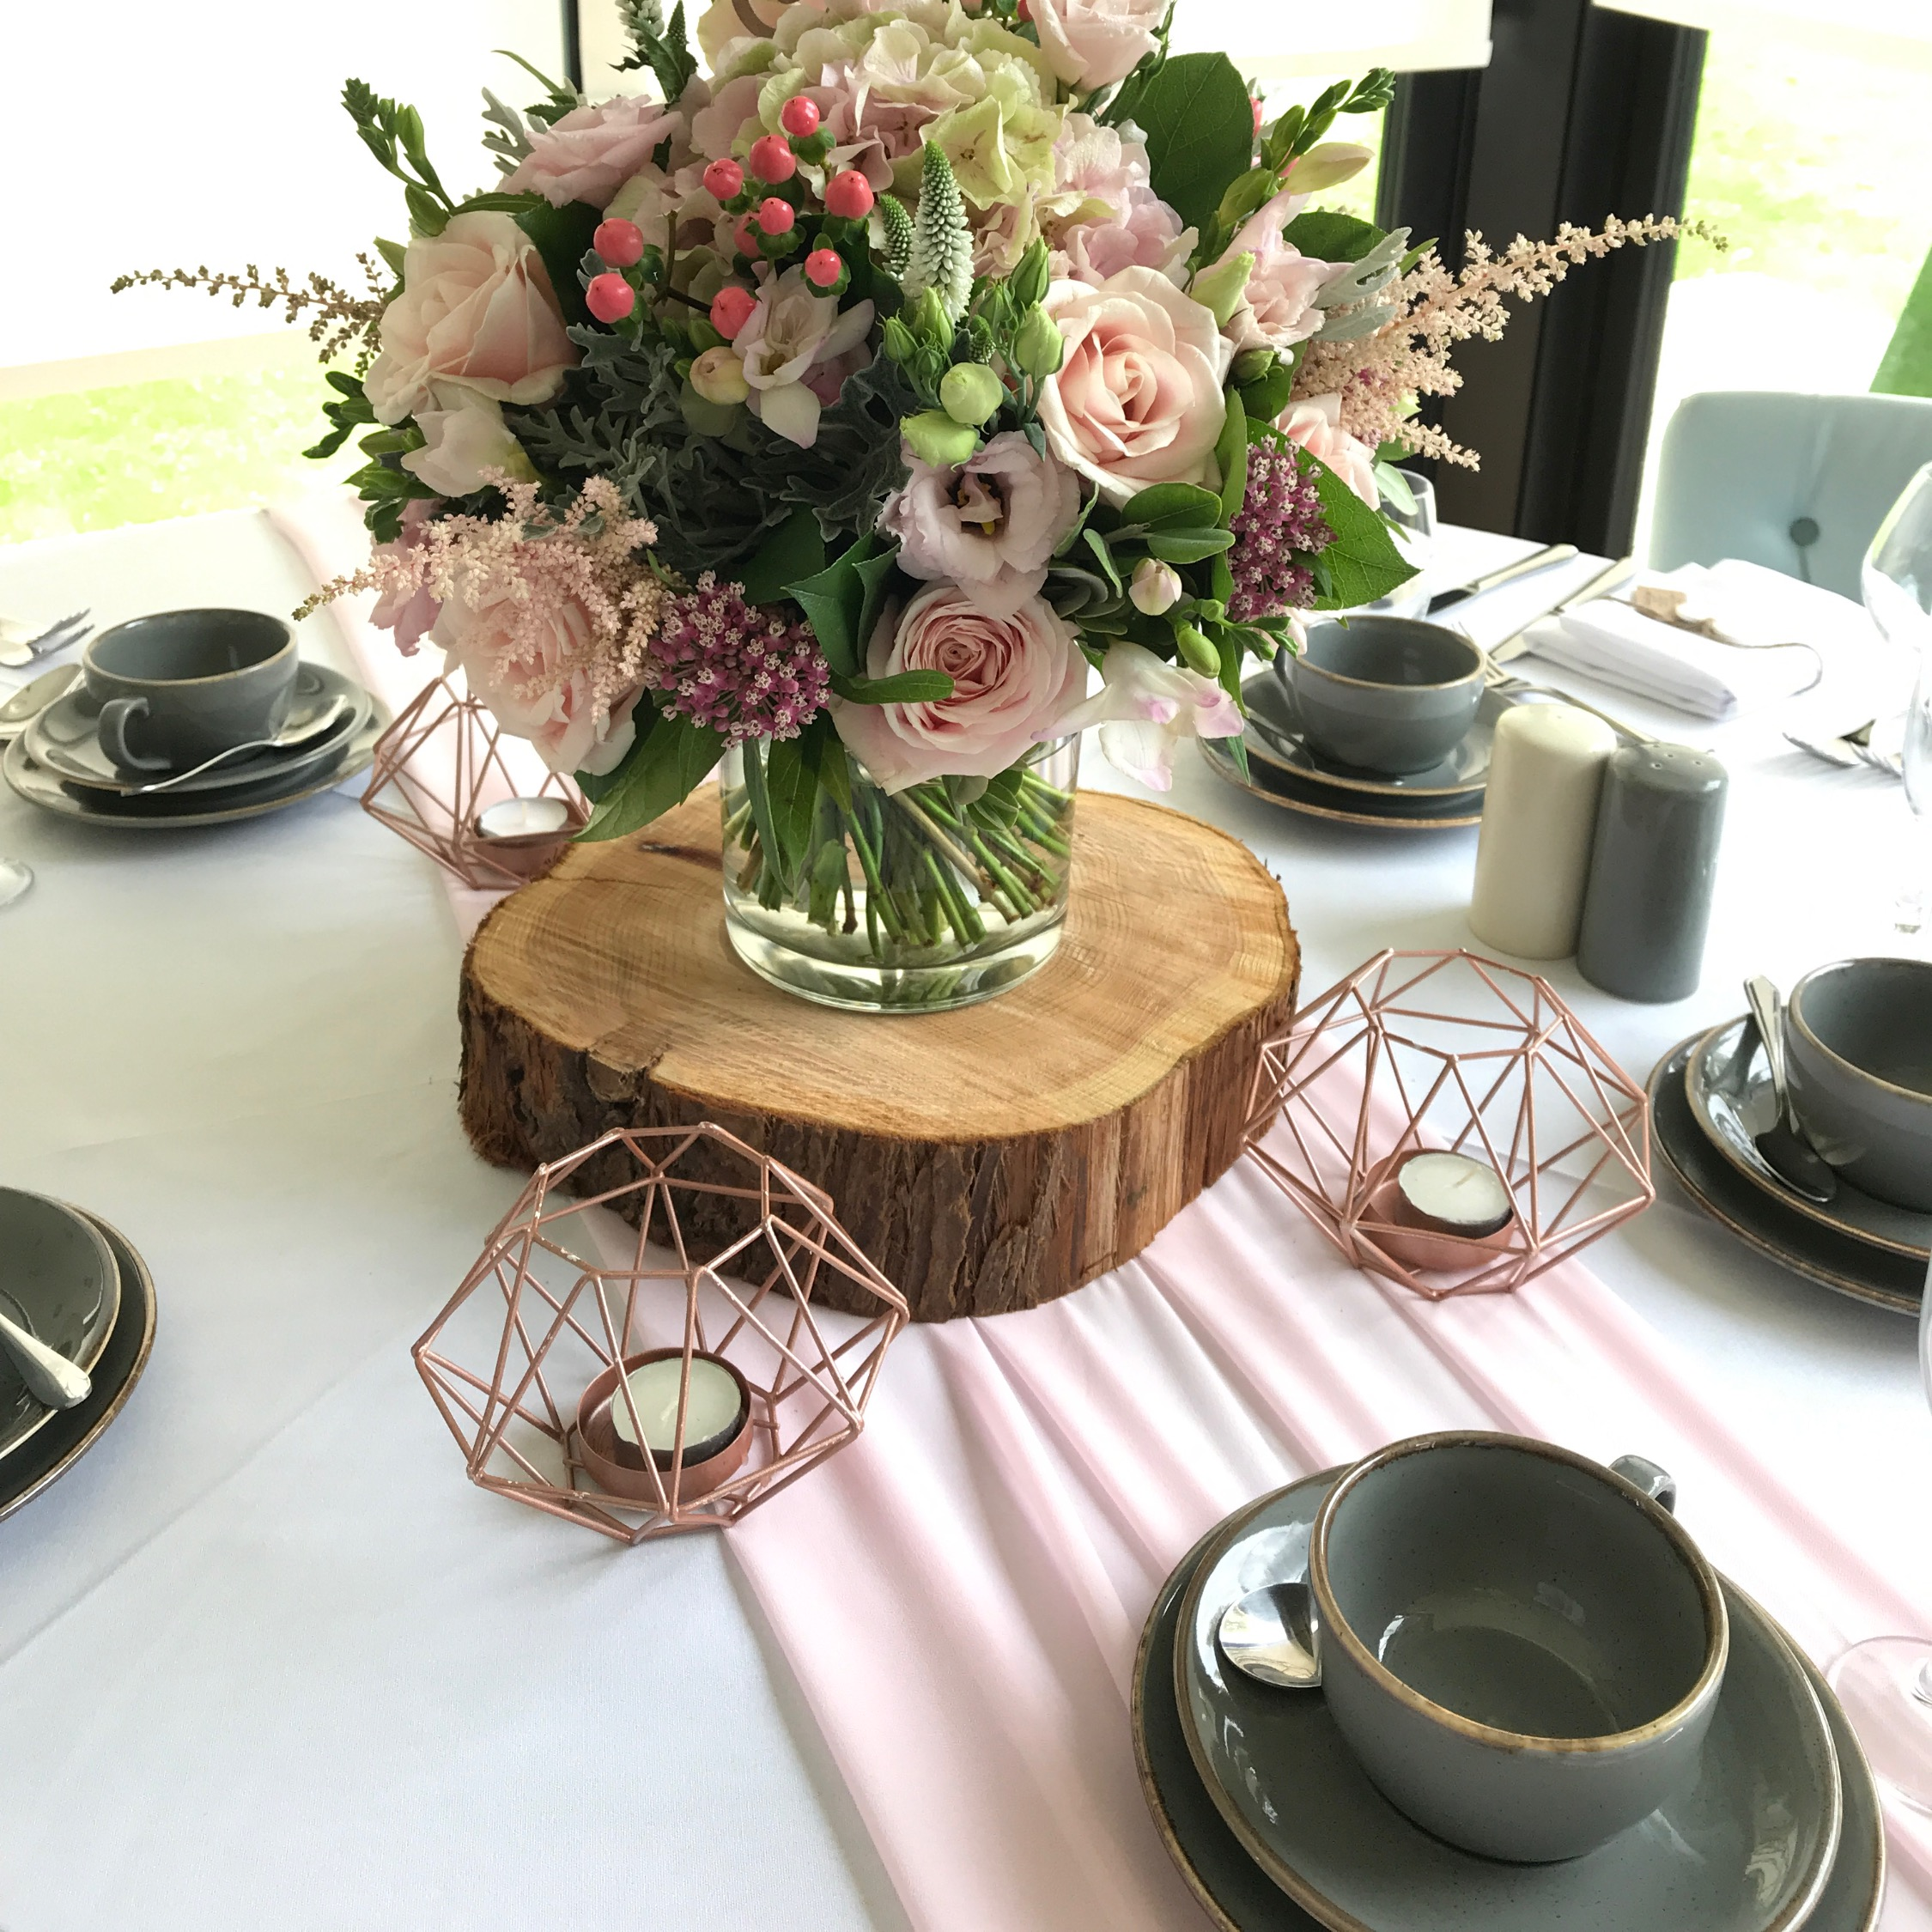 BLUSH PINK CHIFFON TABLE RUNNER